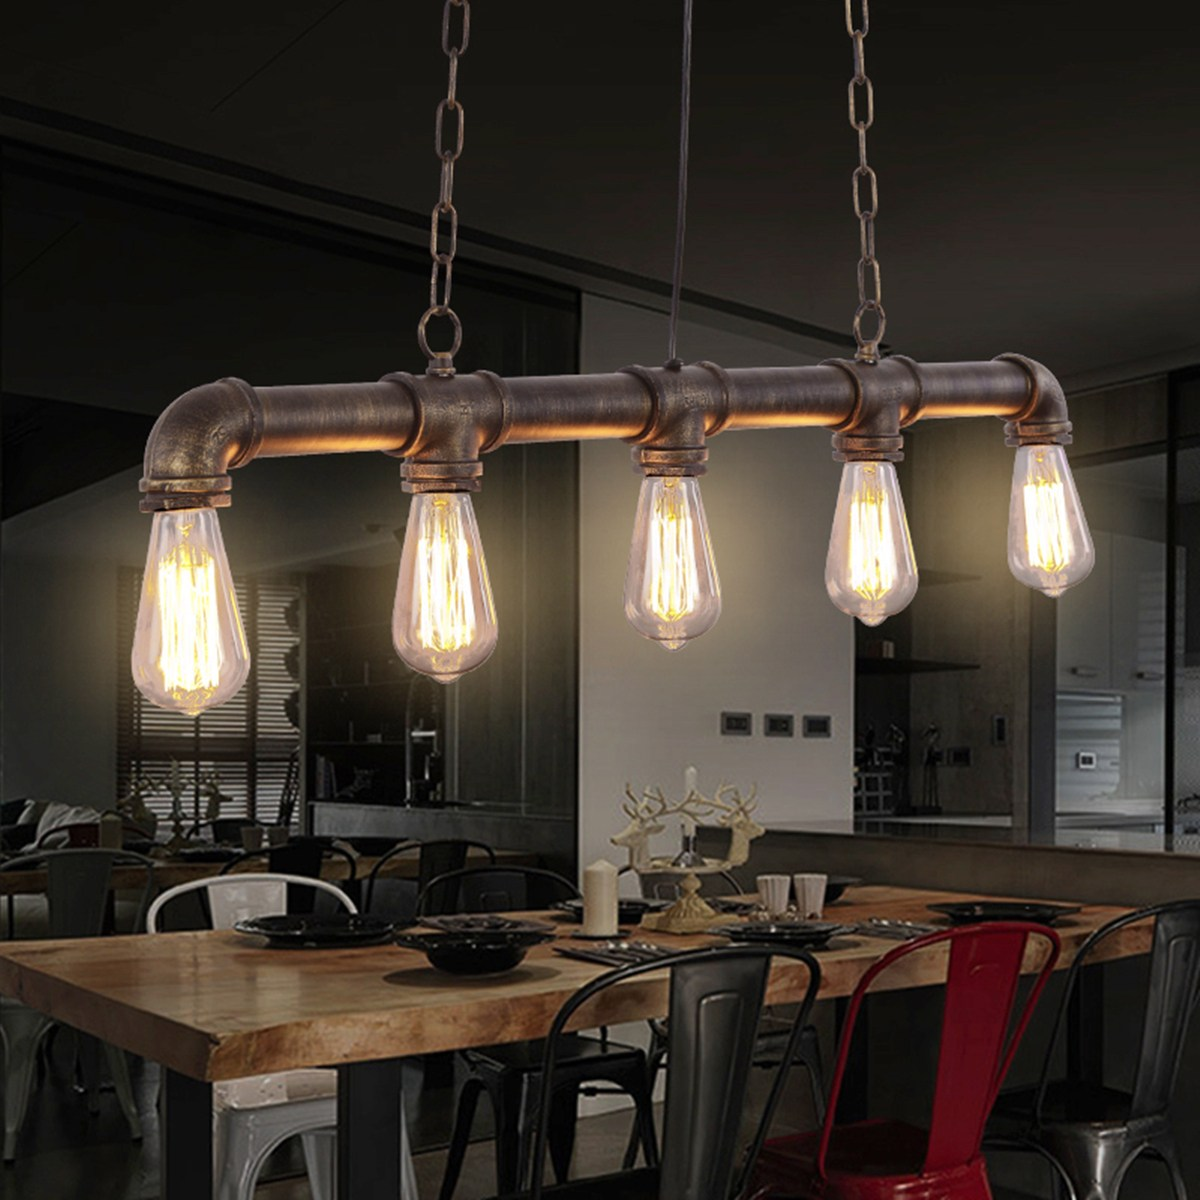 5 Heads Loft Retro Pendant Lamp Industrial Vintage Water Pipe Pendant Lamp E27 Hanging Light for Bar Restaurant Dining Room simple bar restaurant droplight loft retro pendant lamp industrial wind vintage iron hanging lamps for dining room